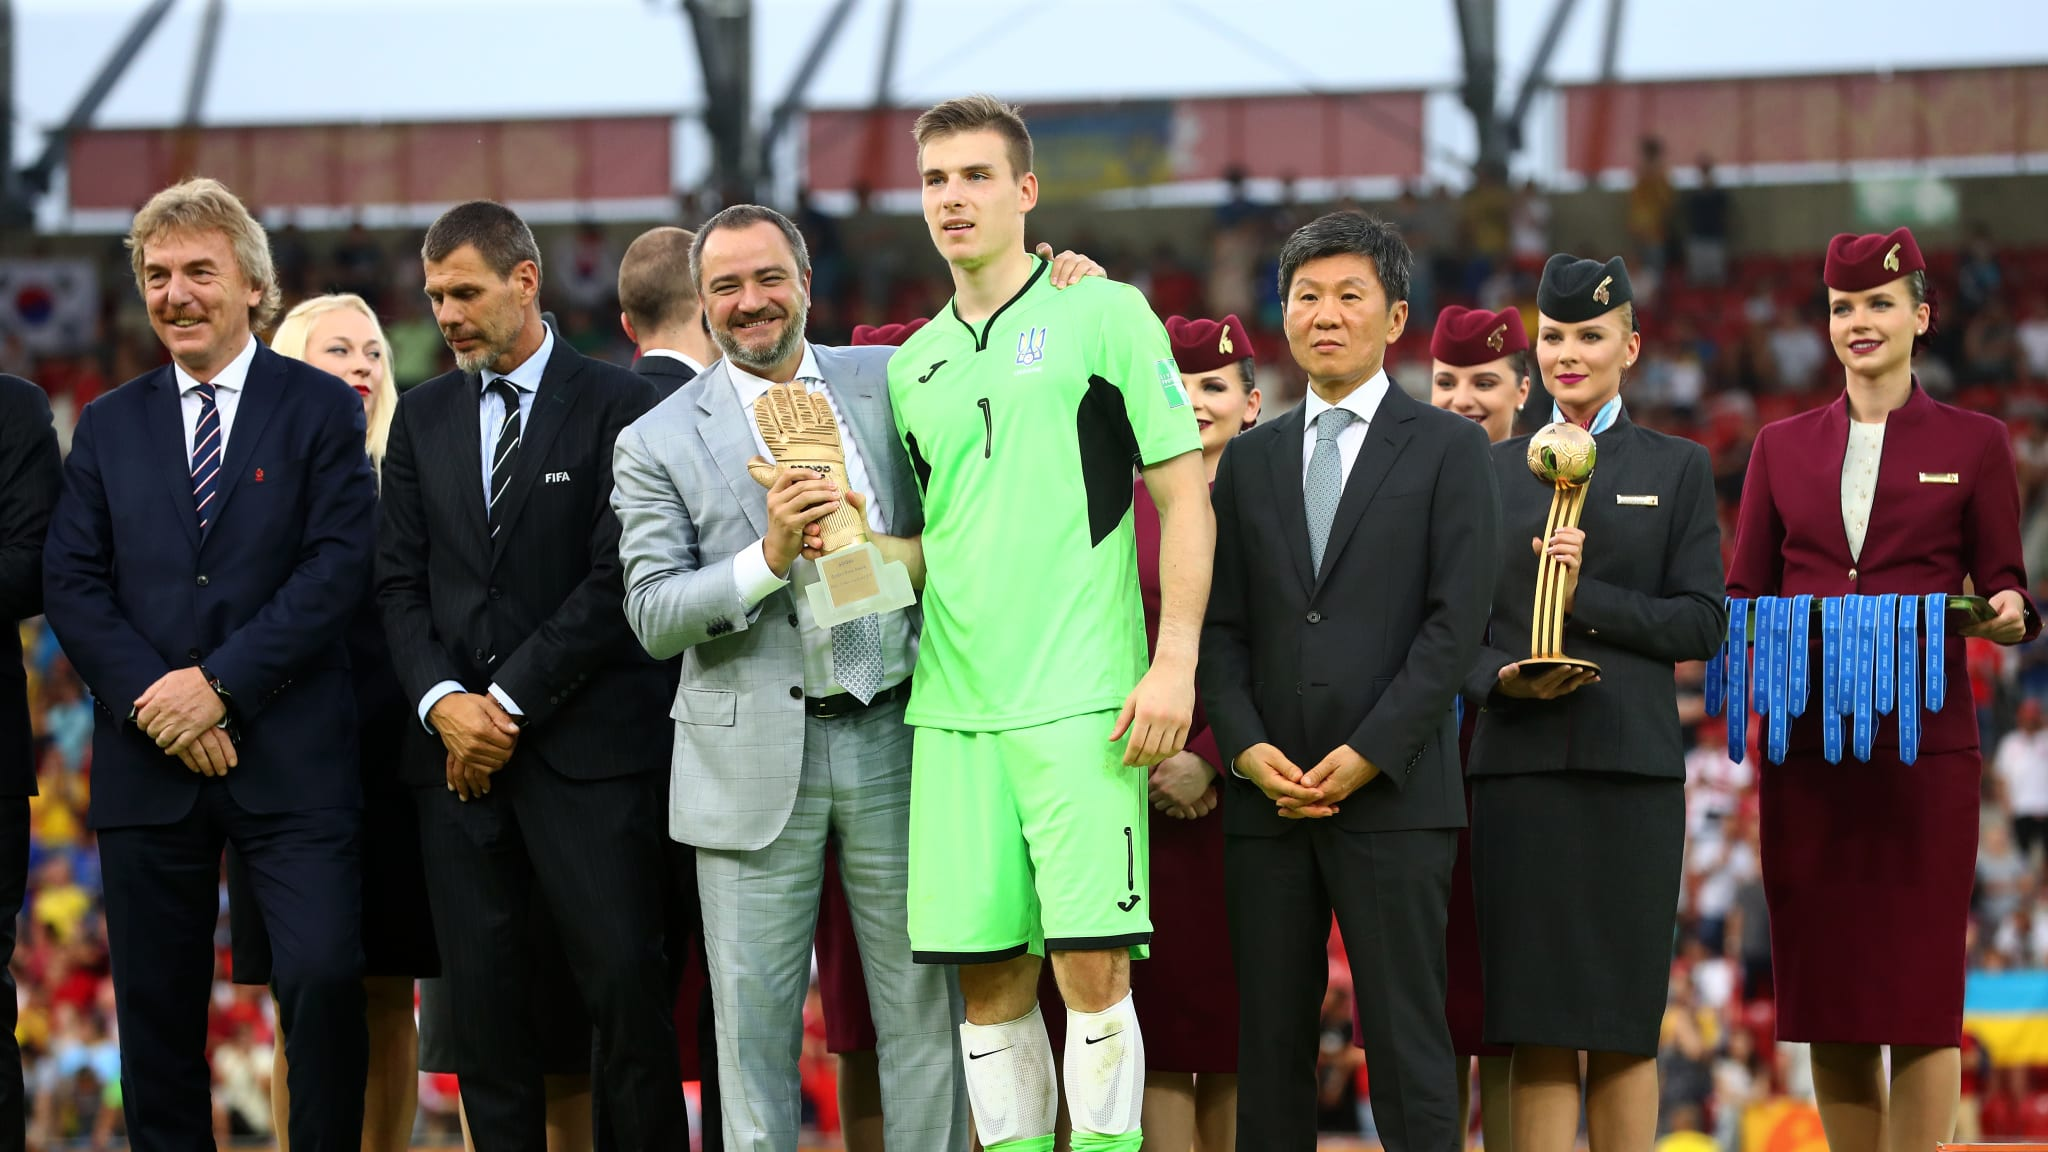 Andriy Pavelko, President of the Football Federation of Ukraine presents Andriy Lunin of Ukraine with the Golden Glove Award